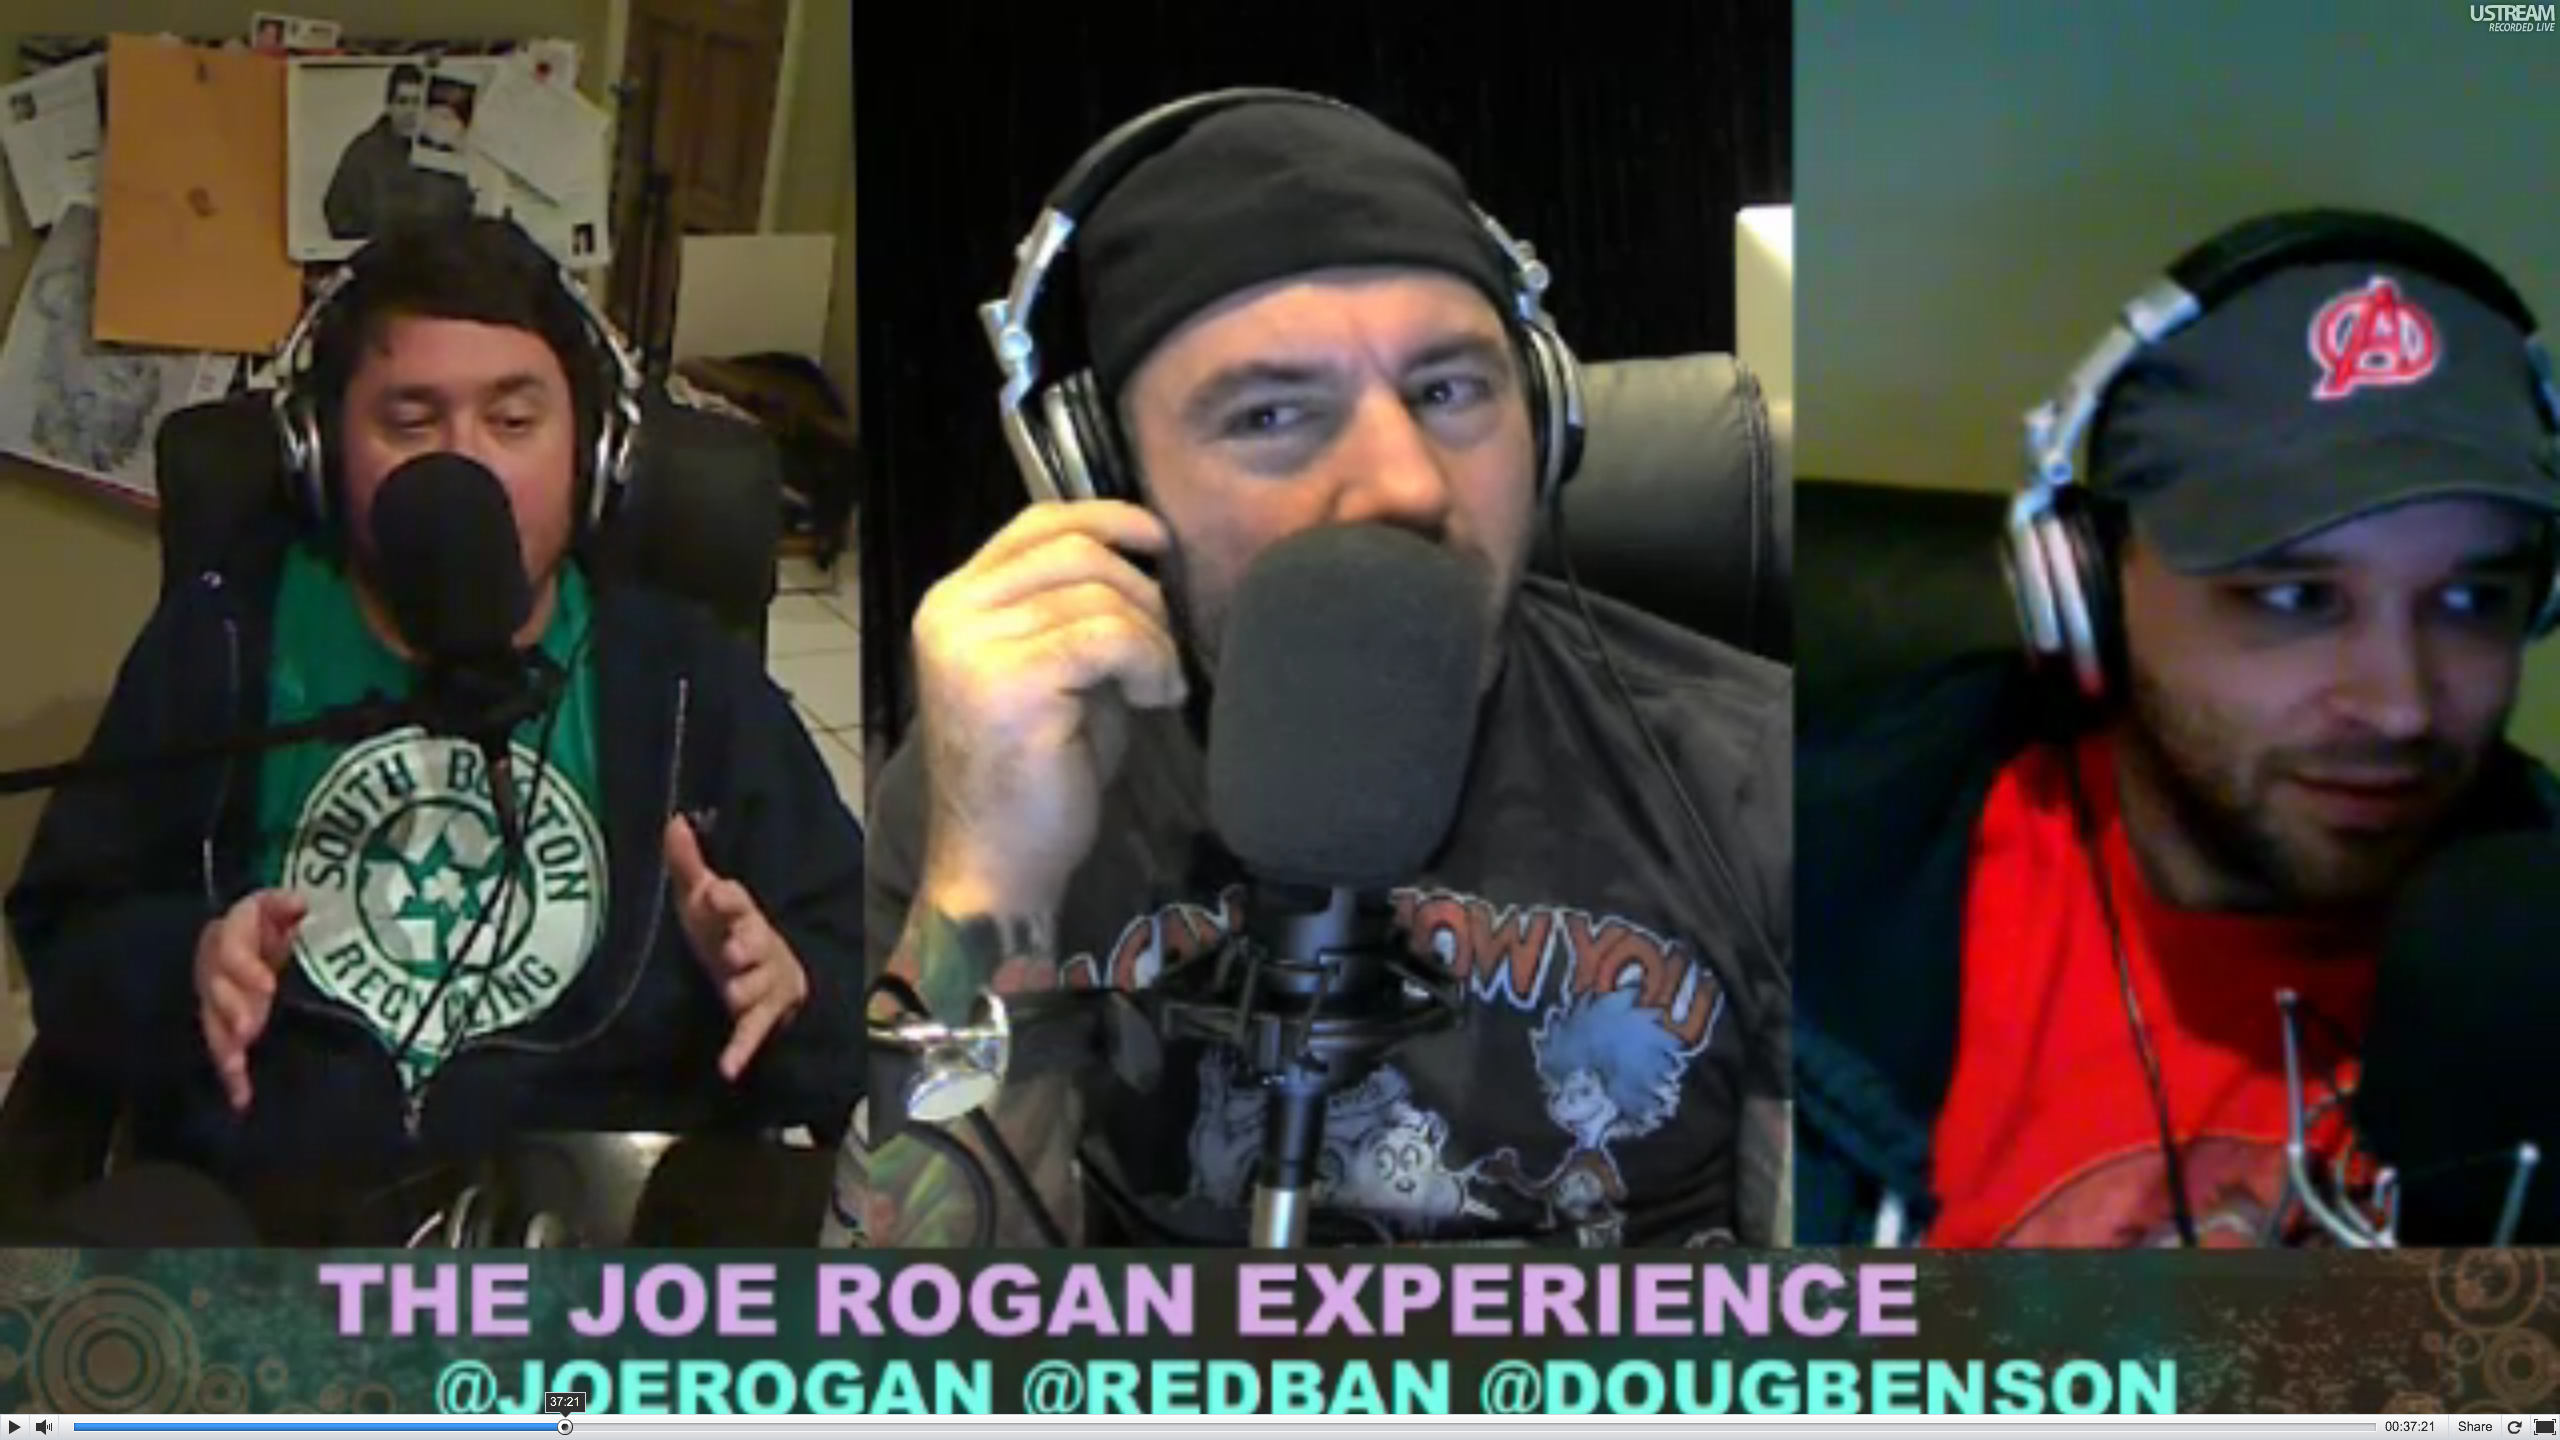 The Joe Rogan Experience PODCAST #158 - Doug Benson, Brian Redban